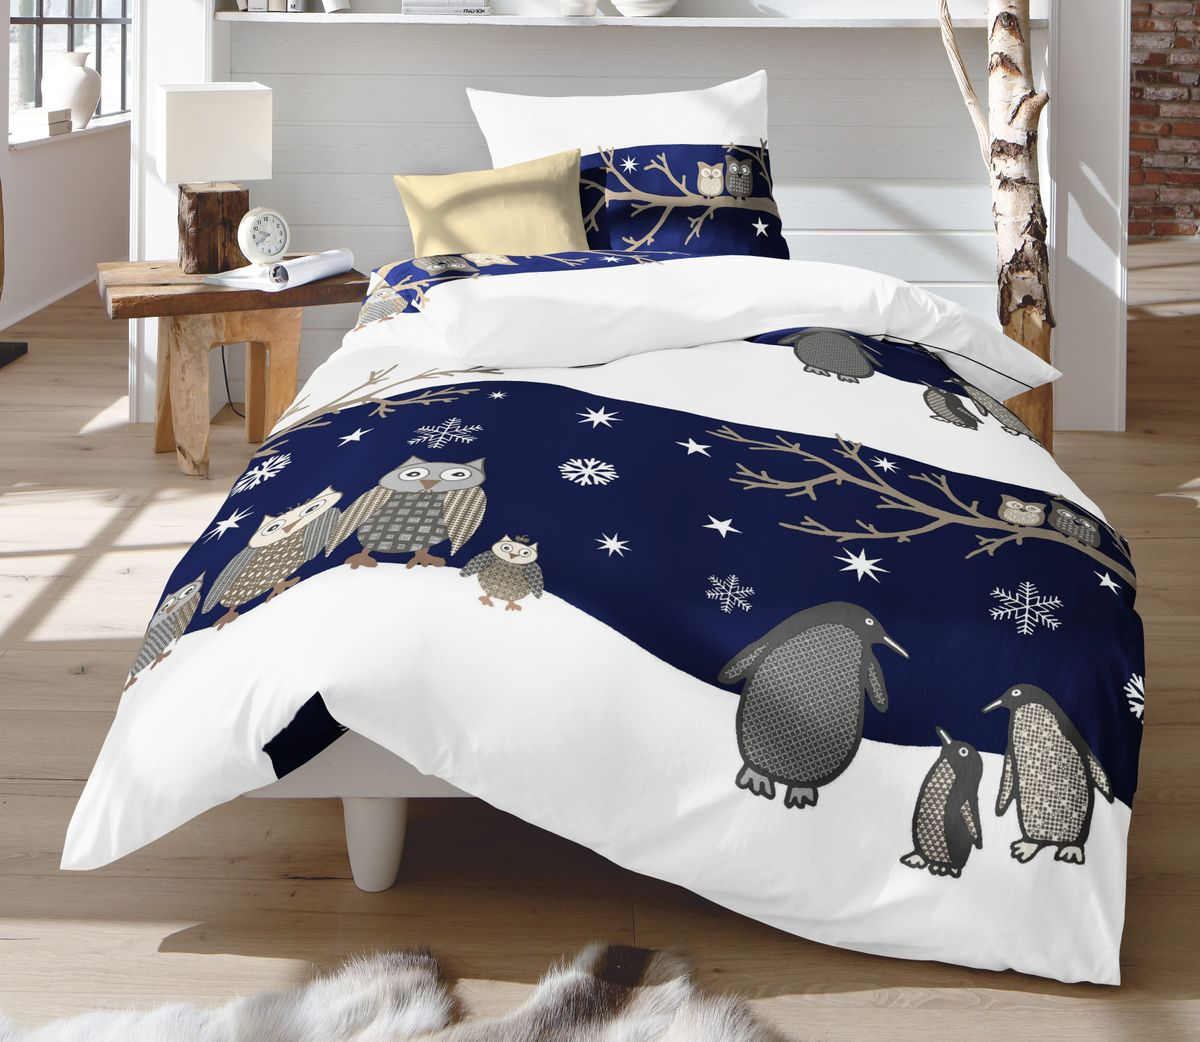 fleuresse fein biber bettw sche 135x200cm 2 tlg blau silber eulen pinguine bettw sche. Black Bedroom Furniture Sets. Home Design Ideas